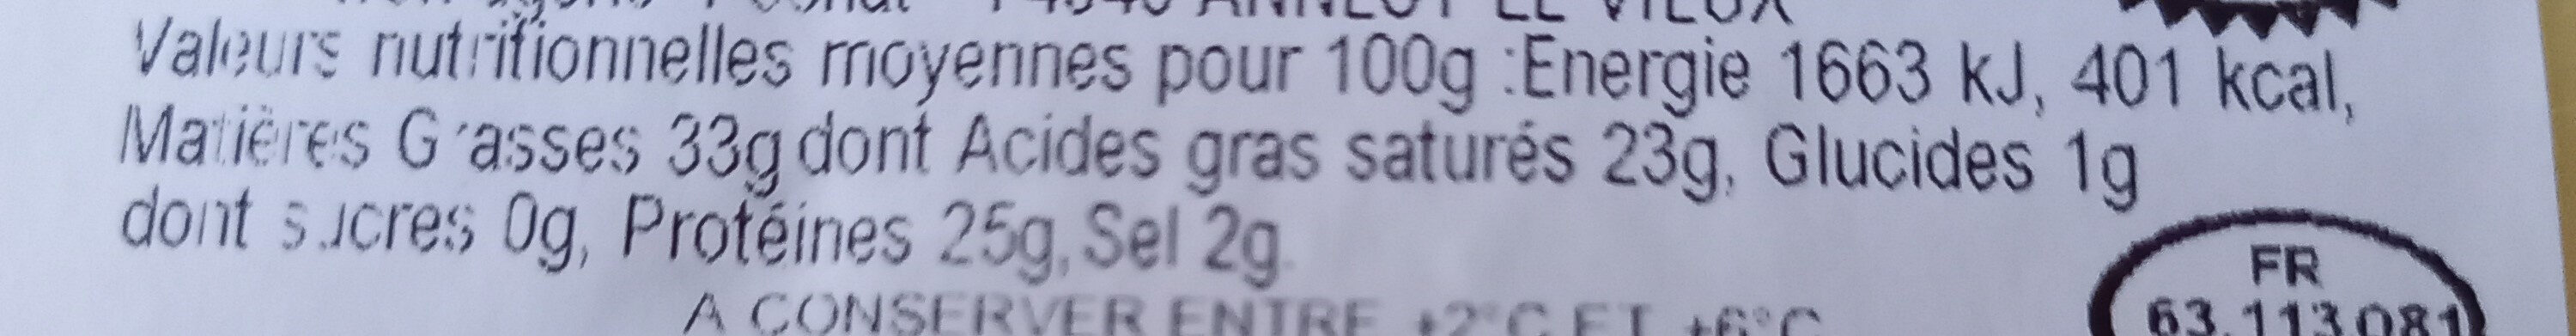 Fromage  ABONDANCE - Nutrition facts - fr